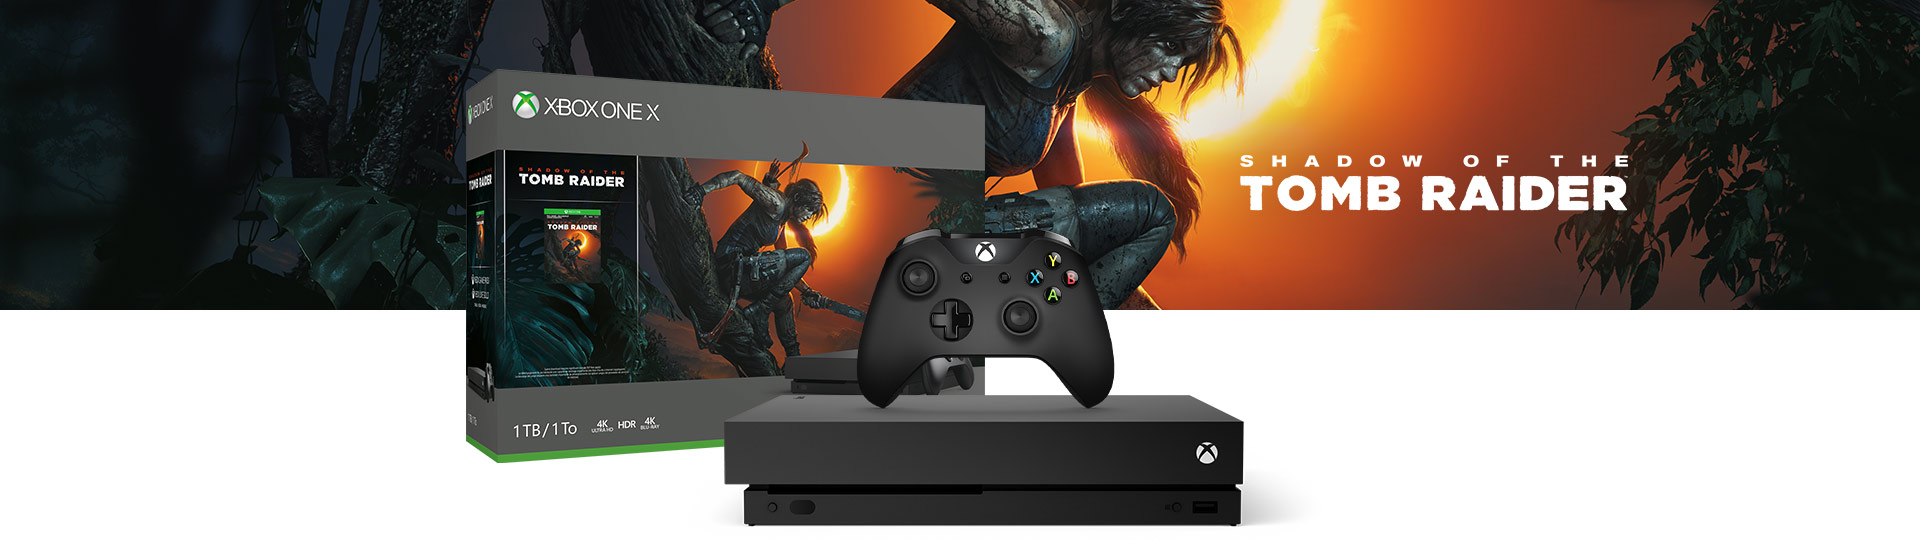 Xbox One X 和控制器,旁邊是 Xbox One X Shadow of the Tomb Raider 1TB 產品包裝盒